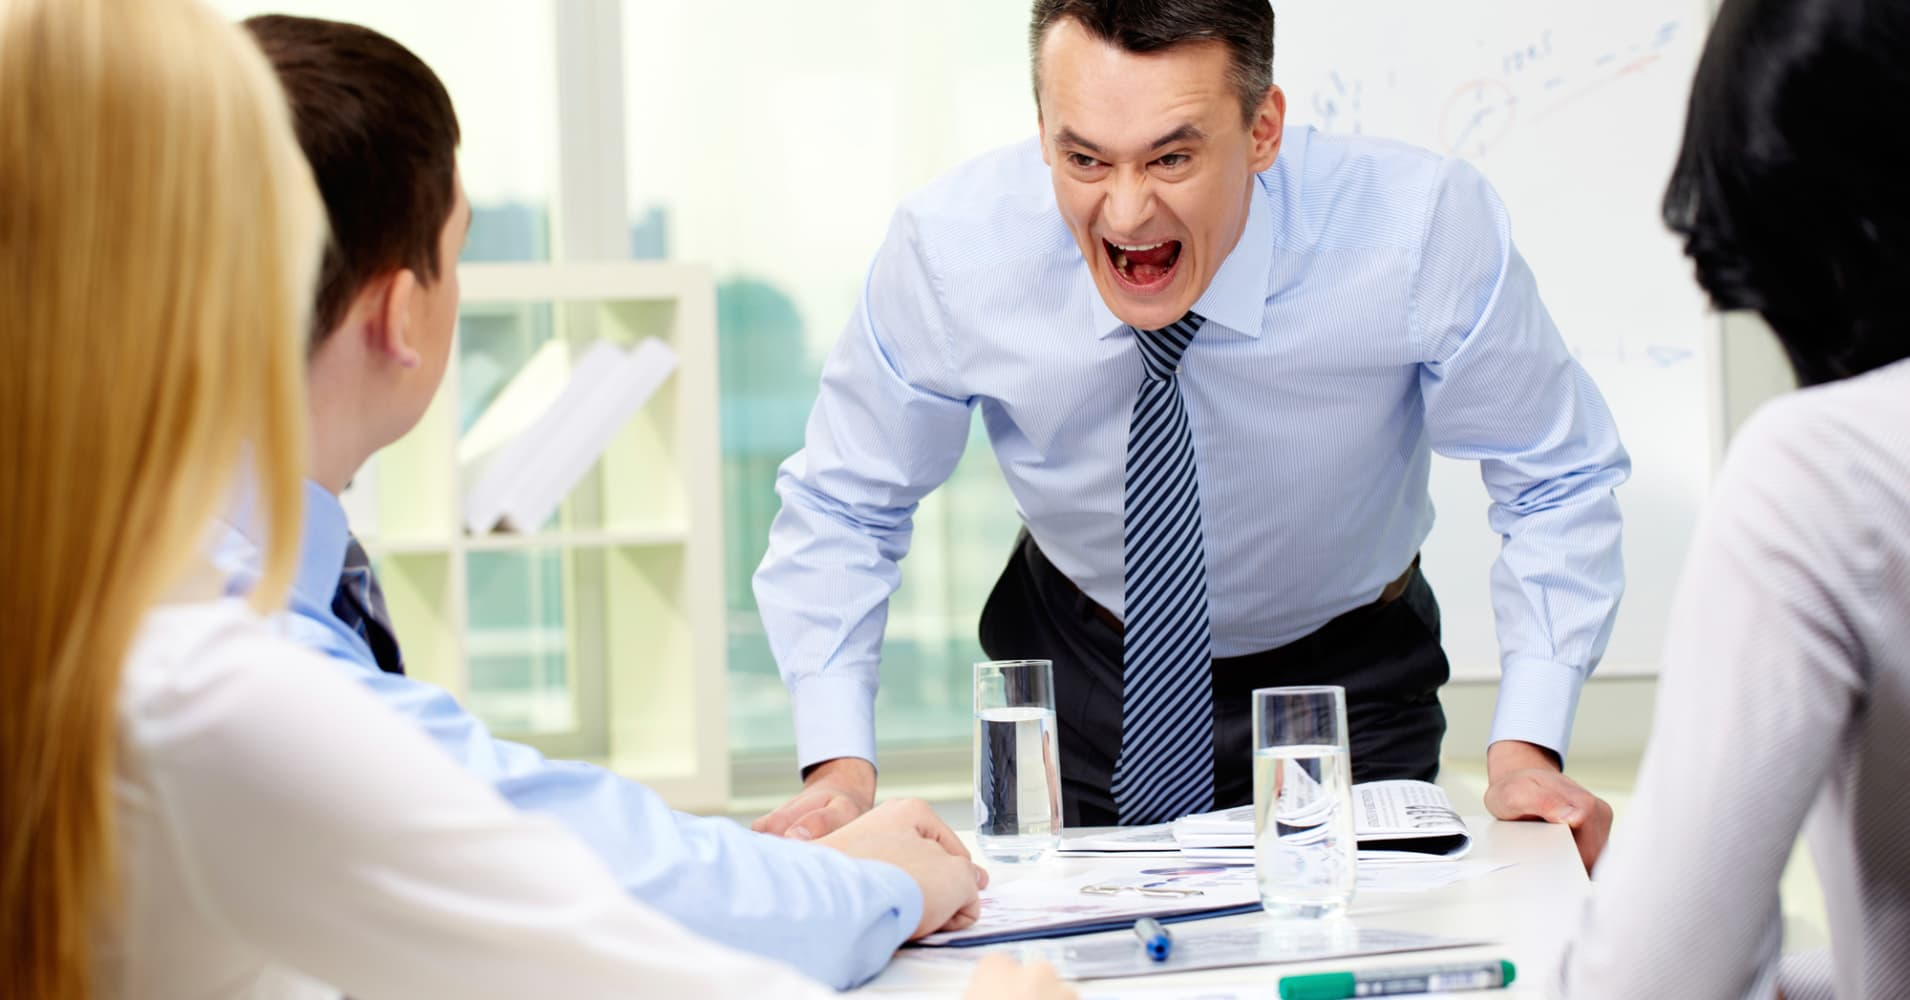 Angry boss, boss yelling, angry office